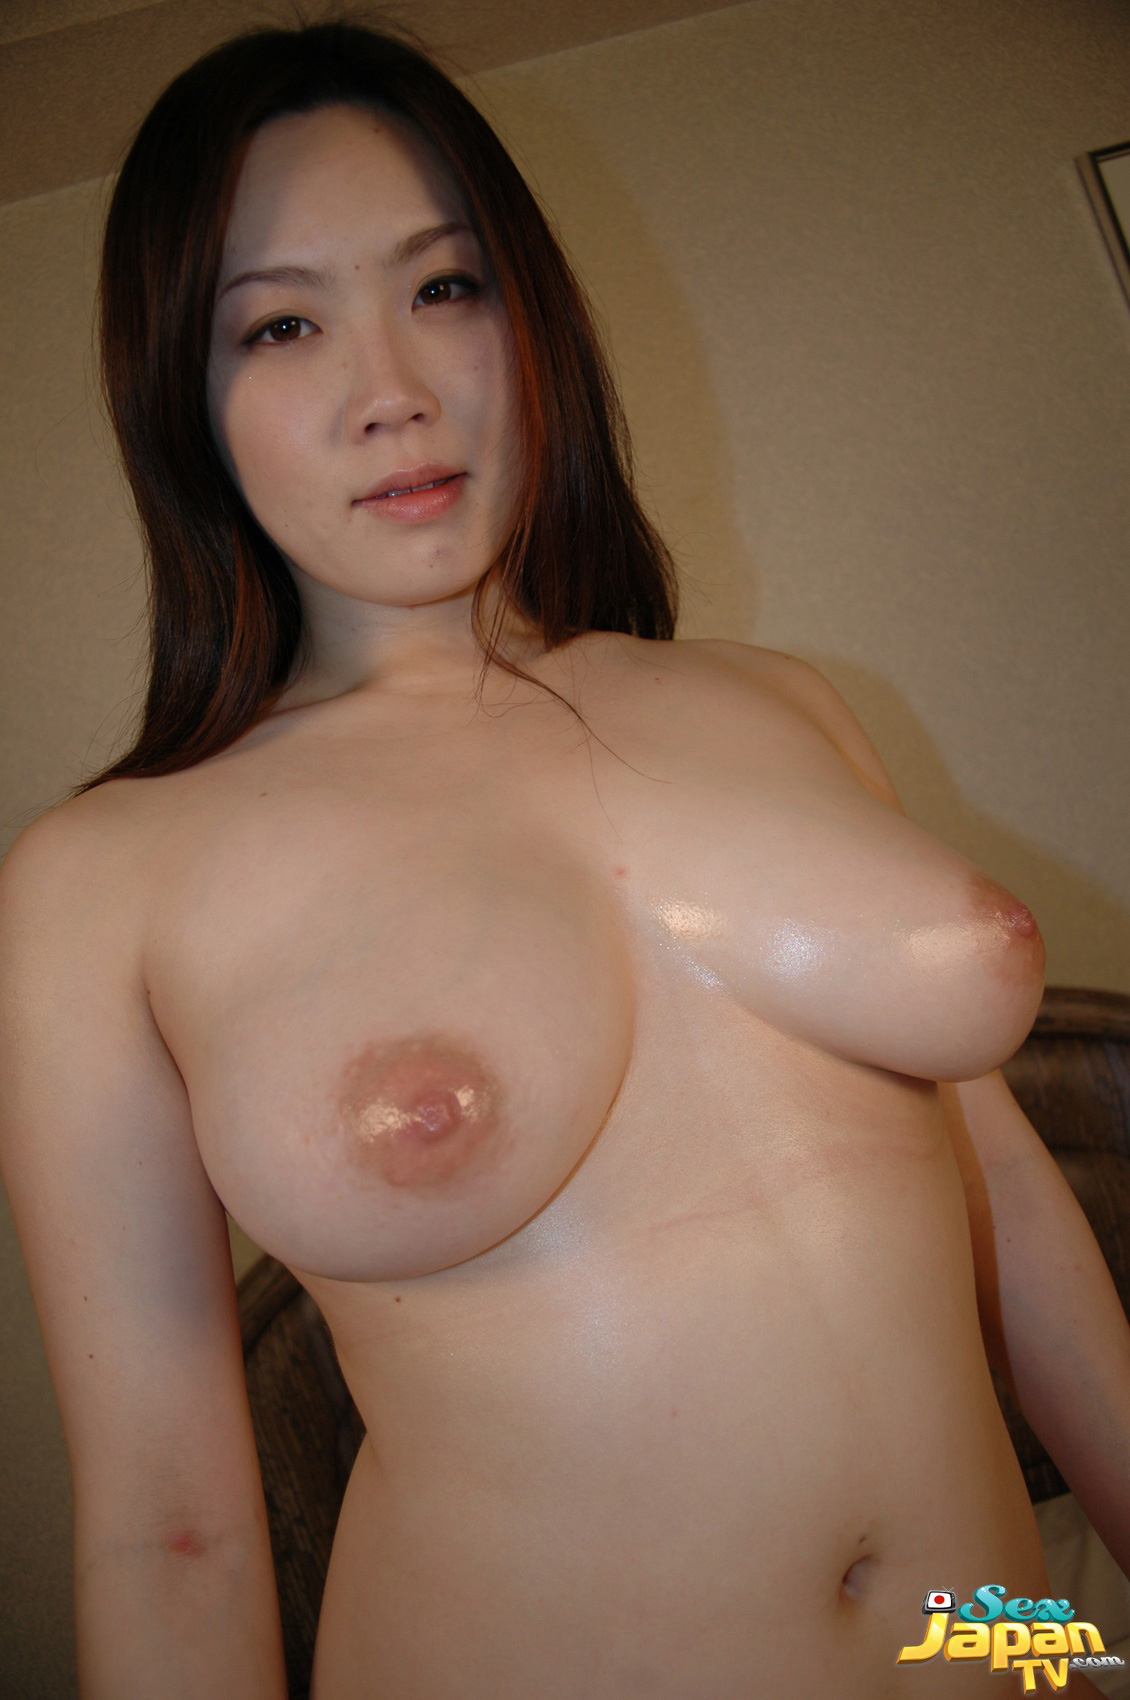 Tit Big asian tits baise